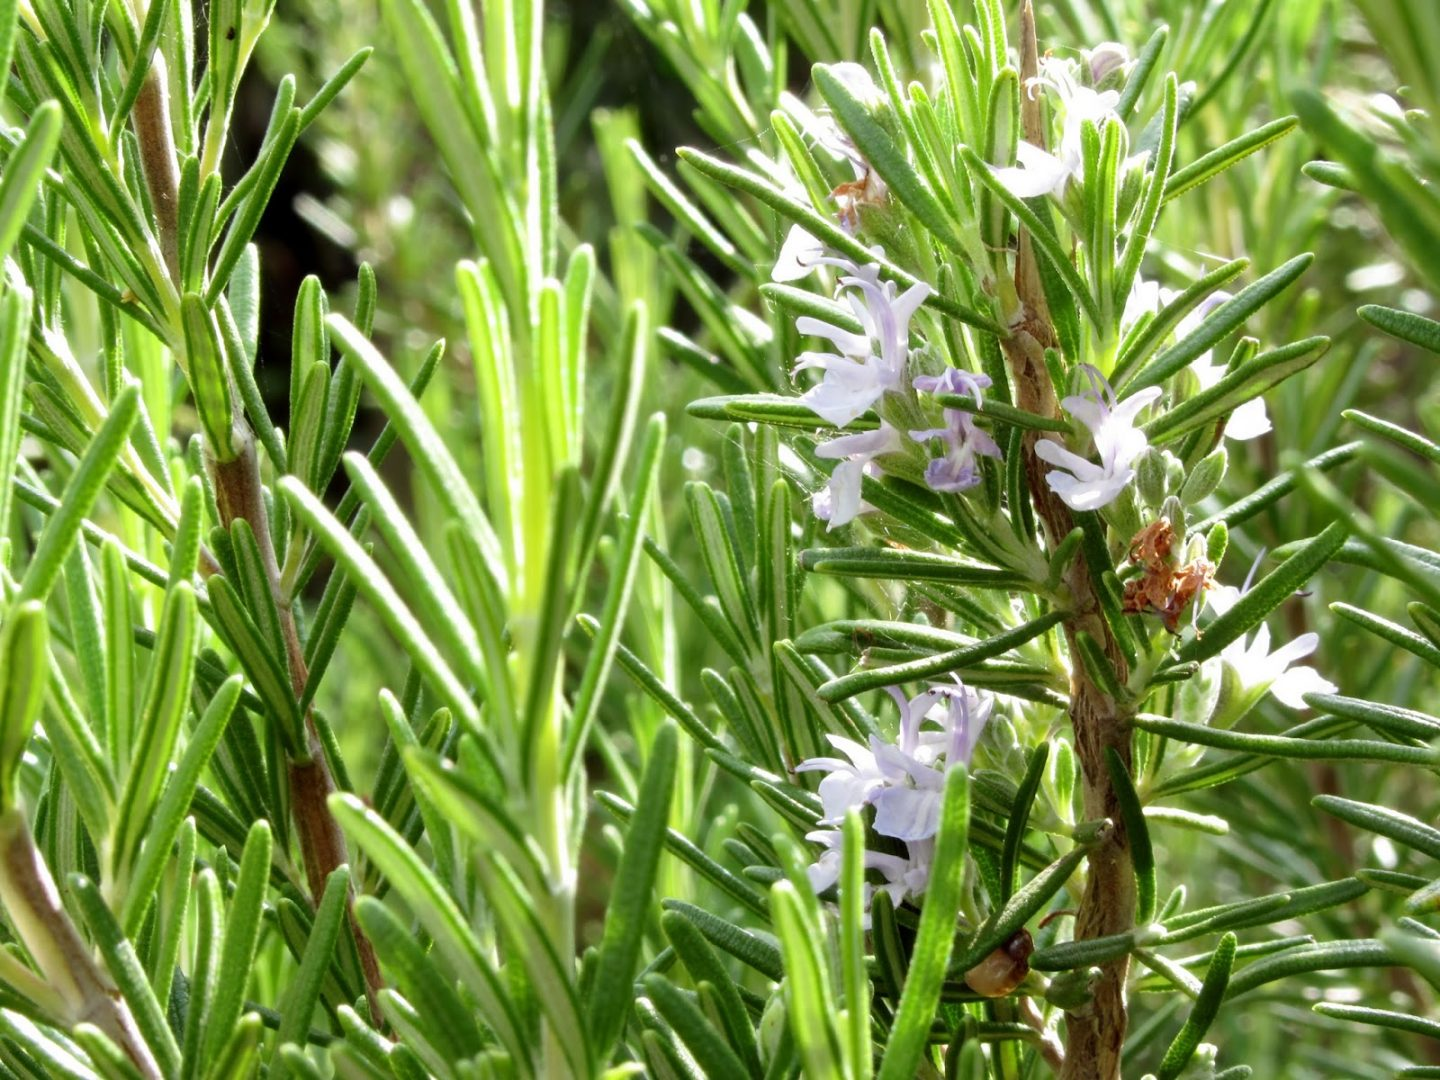 Homemade facial toner fresh rosemary